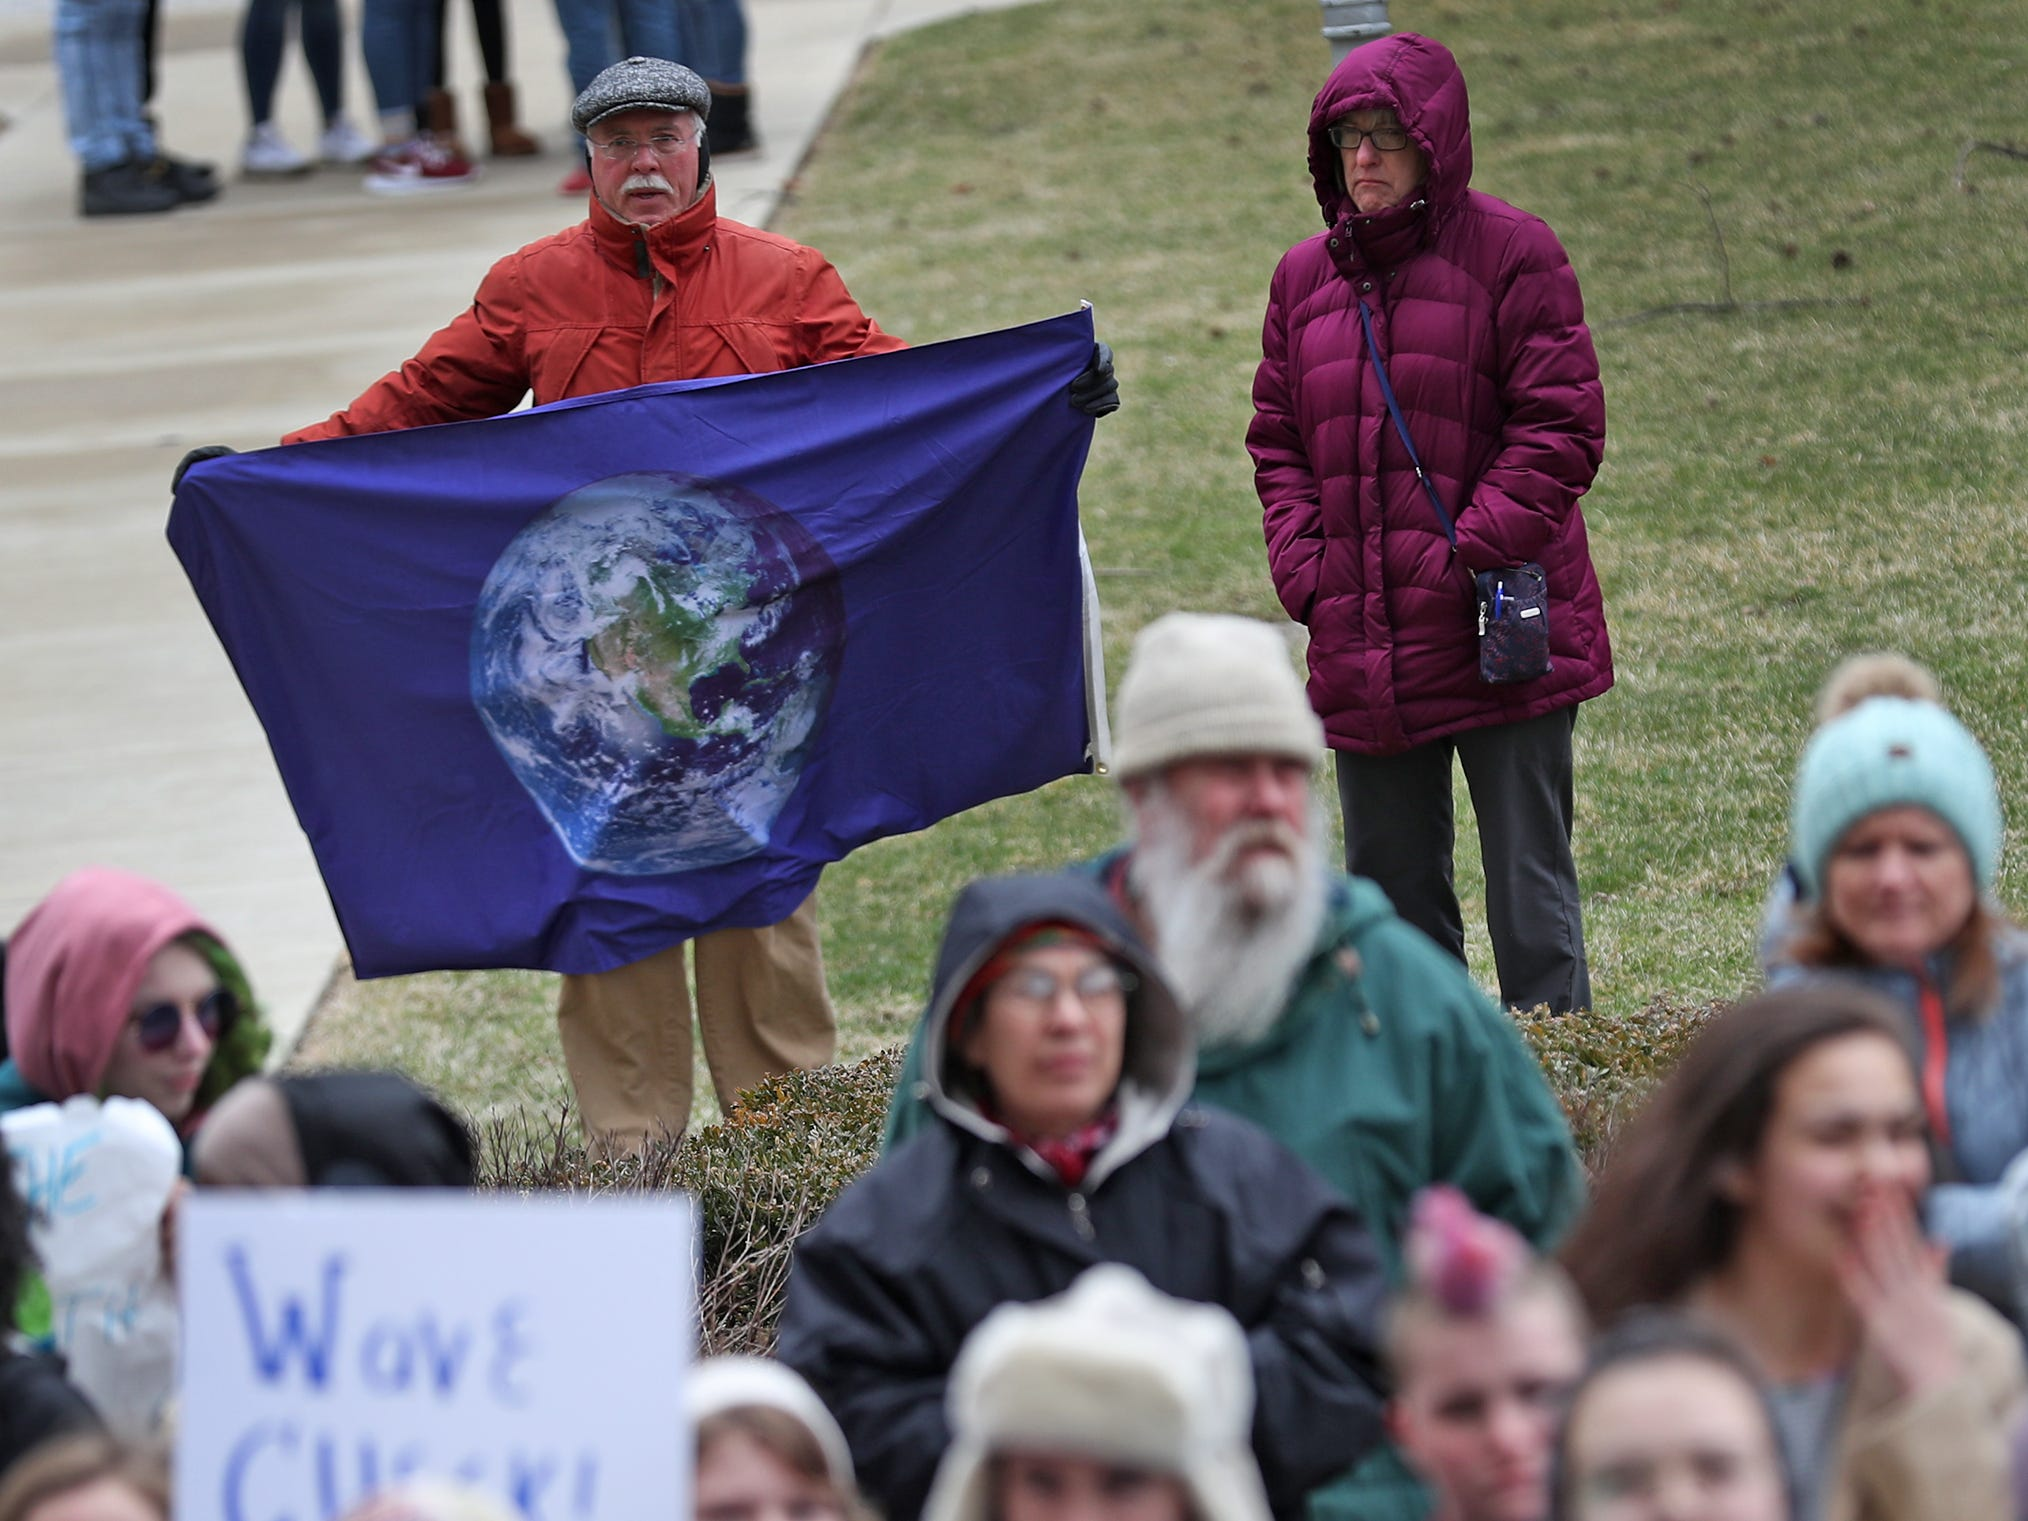 Students and supporters come together during the Indiana part of the international Climate Strike, Friday, March 15, 2019, held outside the Indiana Statehouse.  Following in the footsteps of 16-year-old Swedish trailblazer, Greta Thunberg, students around the world are skipping school to protest government inaction on climate change.  The Indiana protest brought over 250 participants.